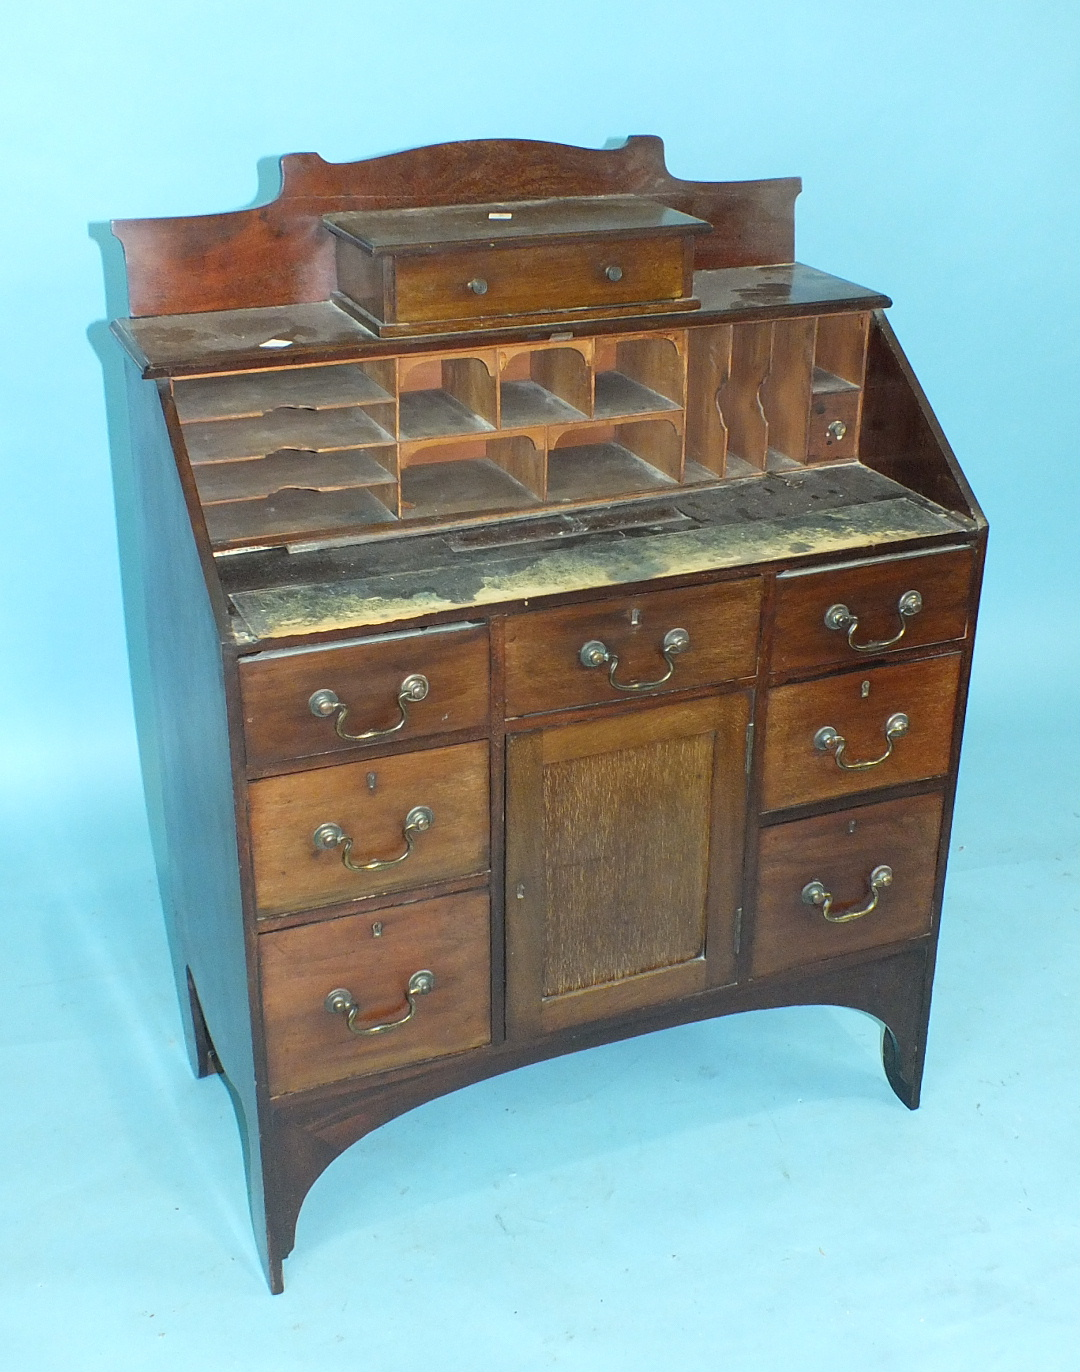 Lot 15 - A late-19th/early-20th century mahogany lady's bureau, the fall front and fitted interior above an